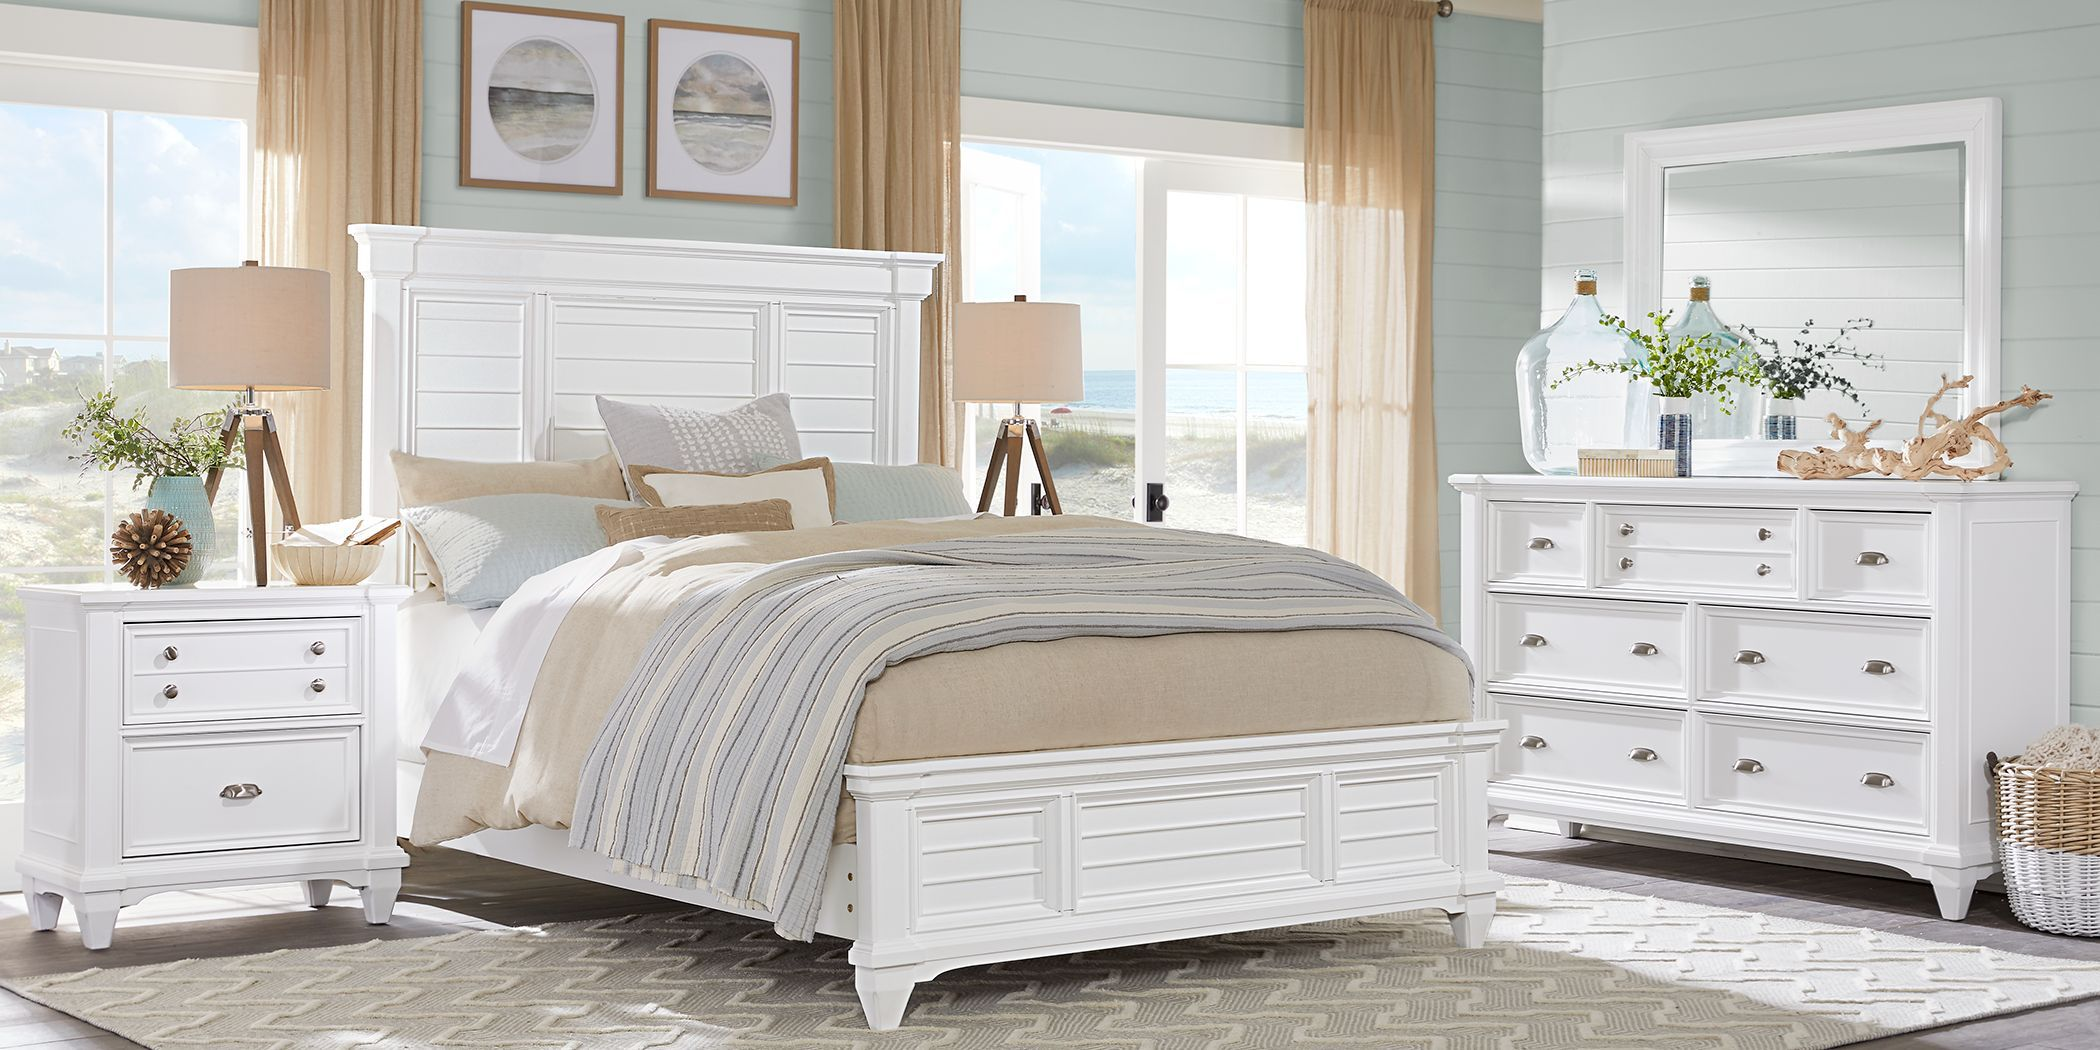 Hilton Head White 3 Pc King Panel Bed Rooms To Go In 2020 Bedroom Panel King Size Bedroom Furniture Sets Queen Sized Bedroom